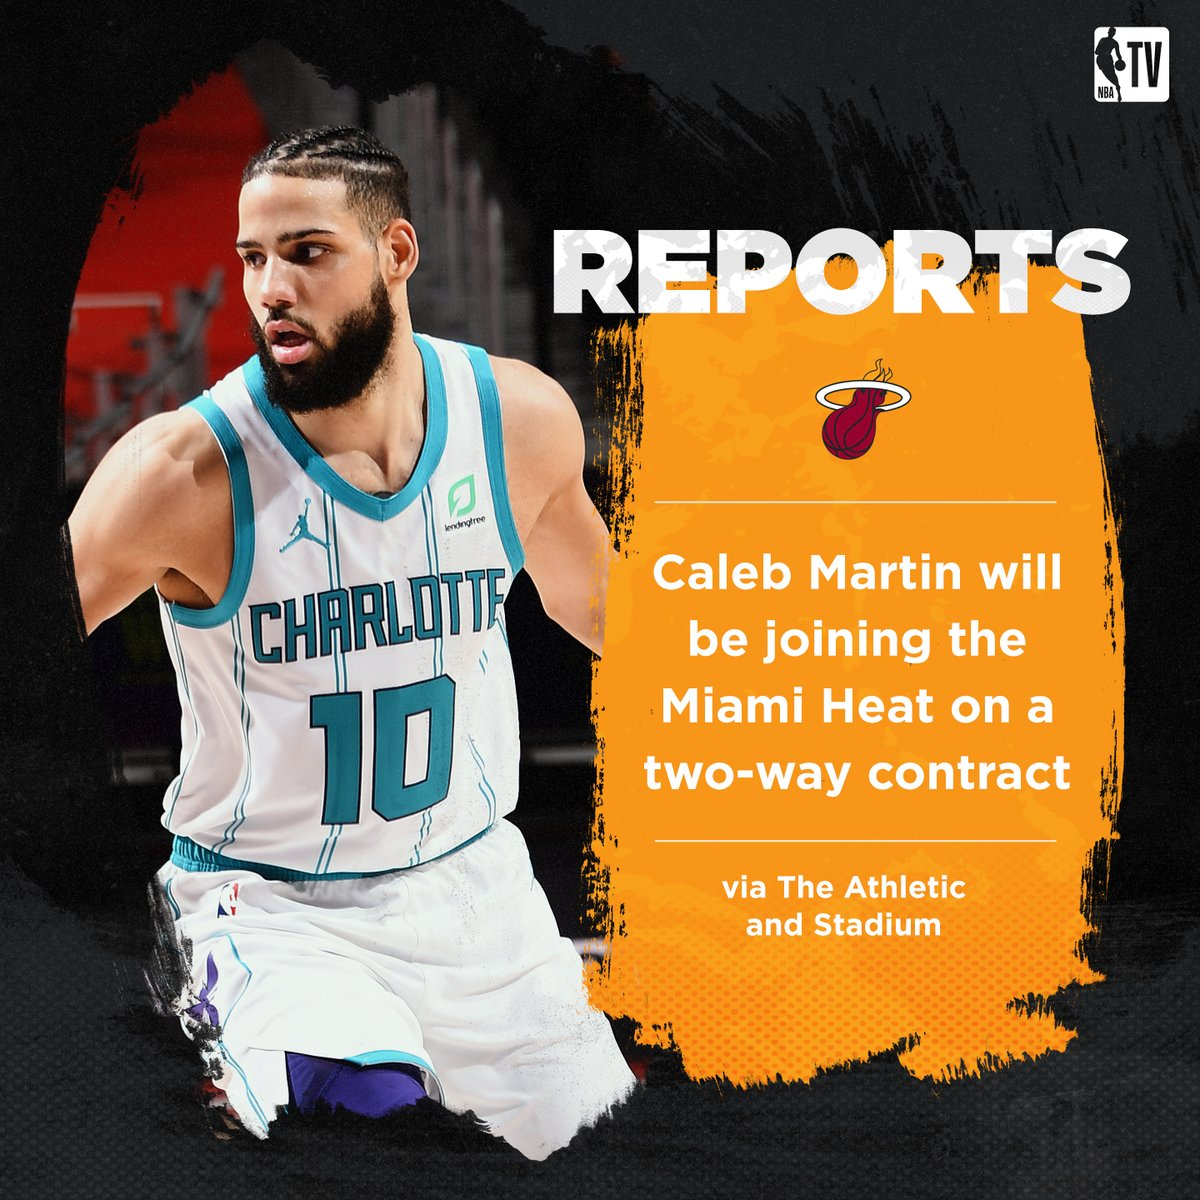 Caleb Martin is signing a two-way contract with the Miami Heat, per @ShamsCharania